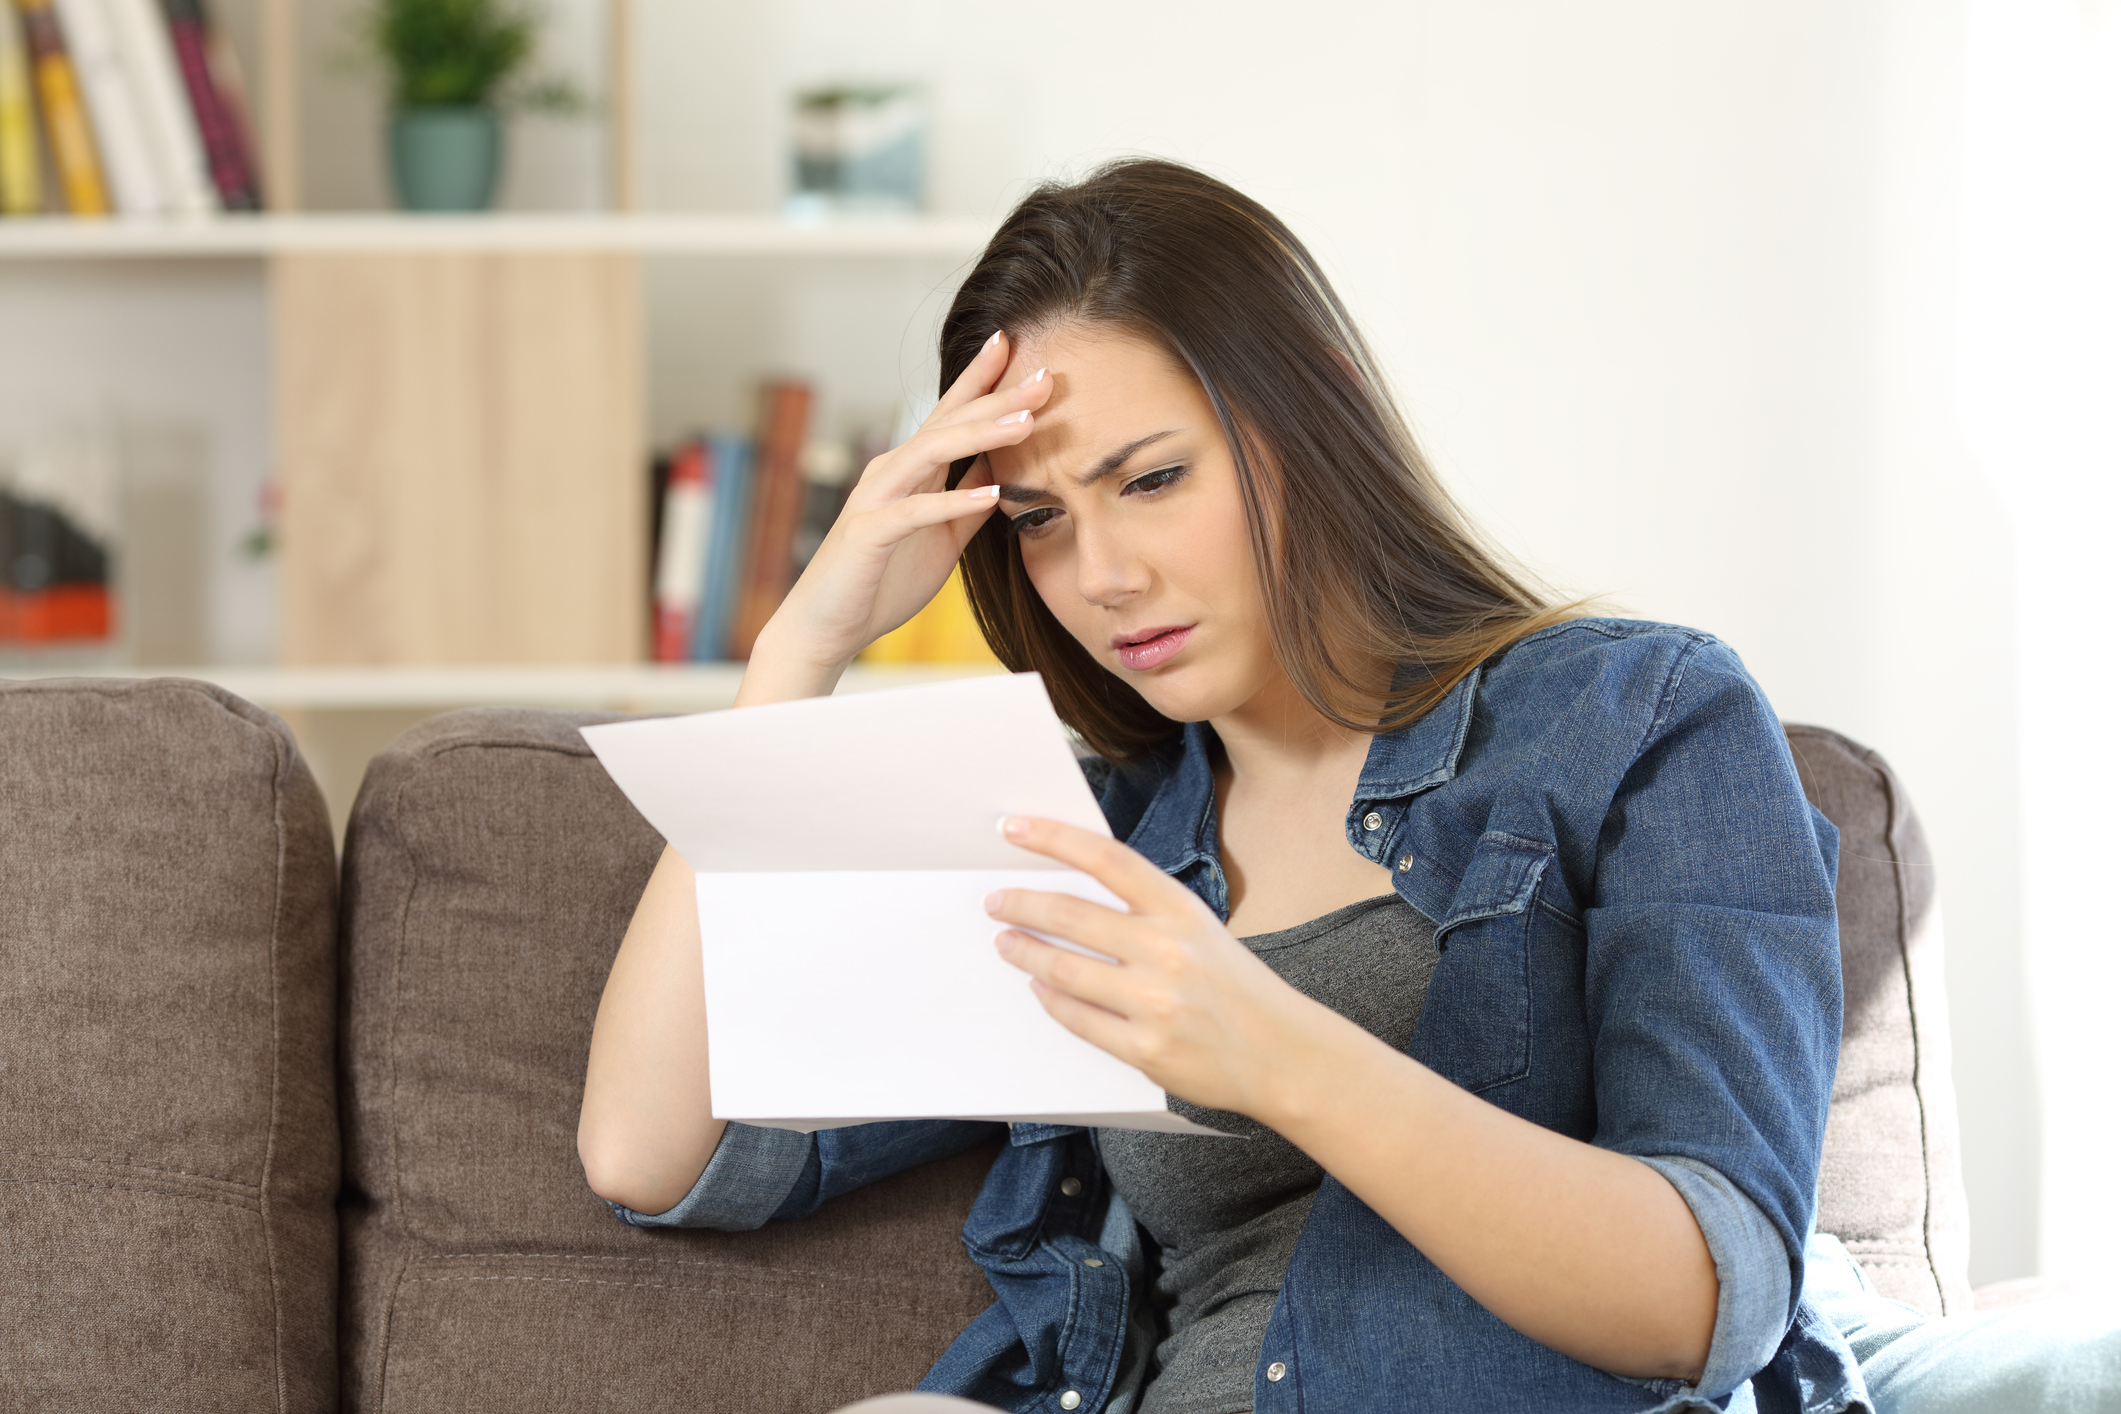 woman sitting on couch reading document while holding her head